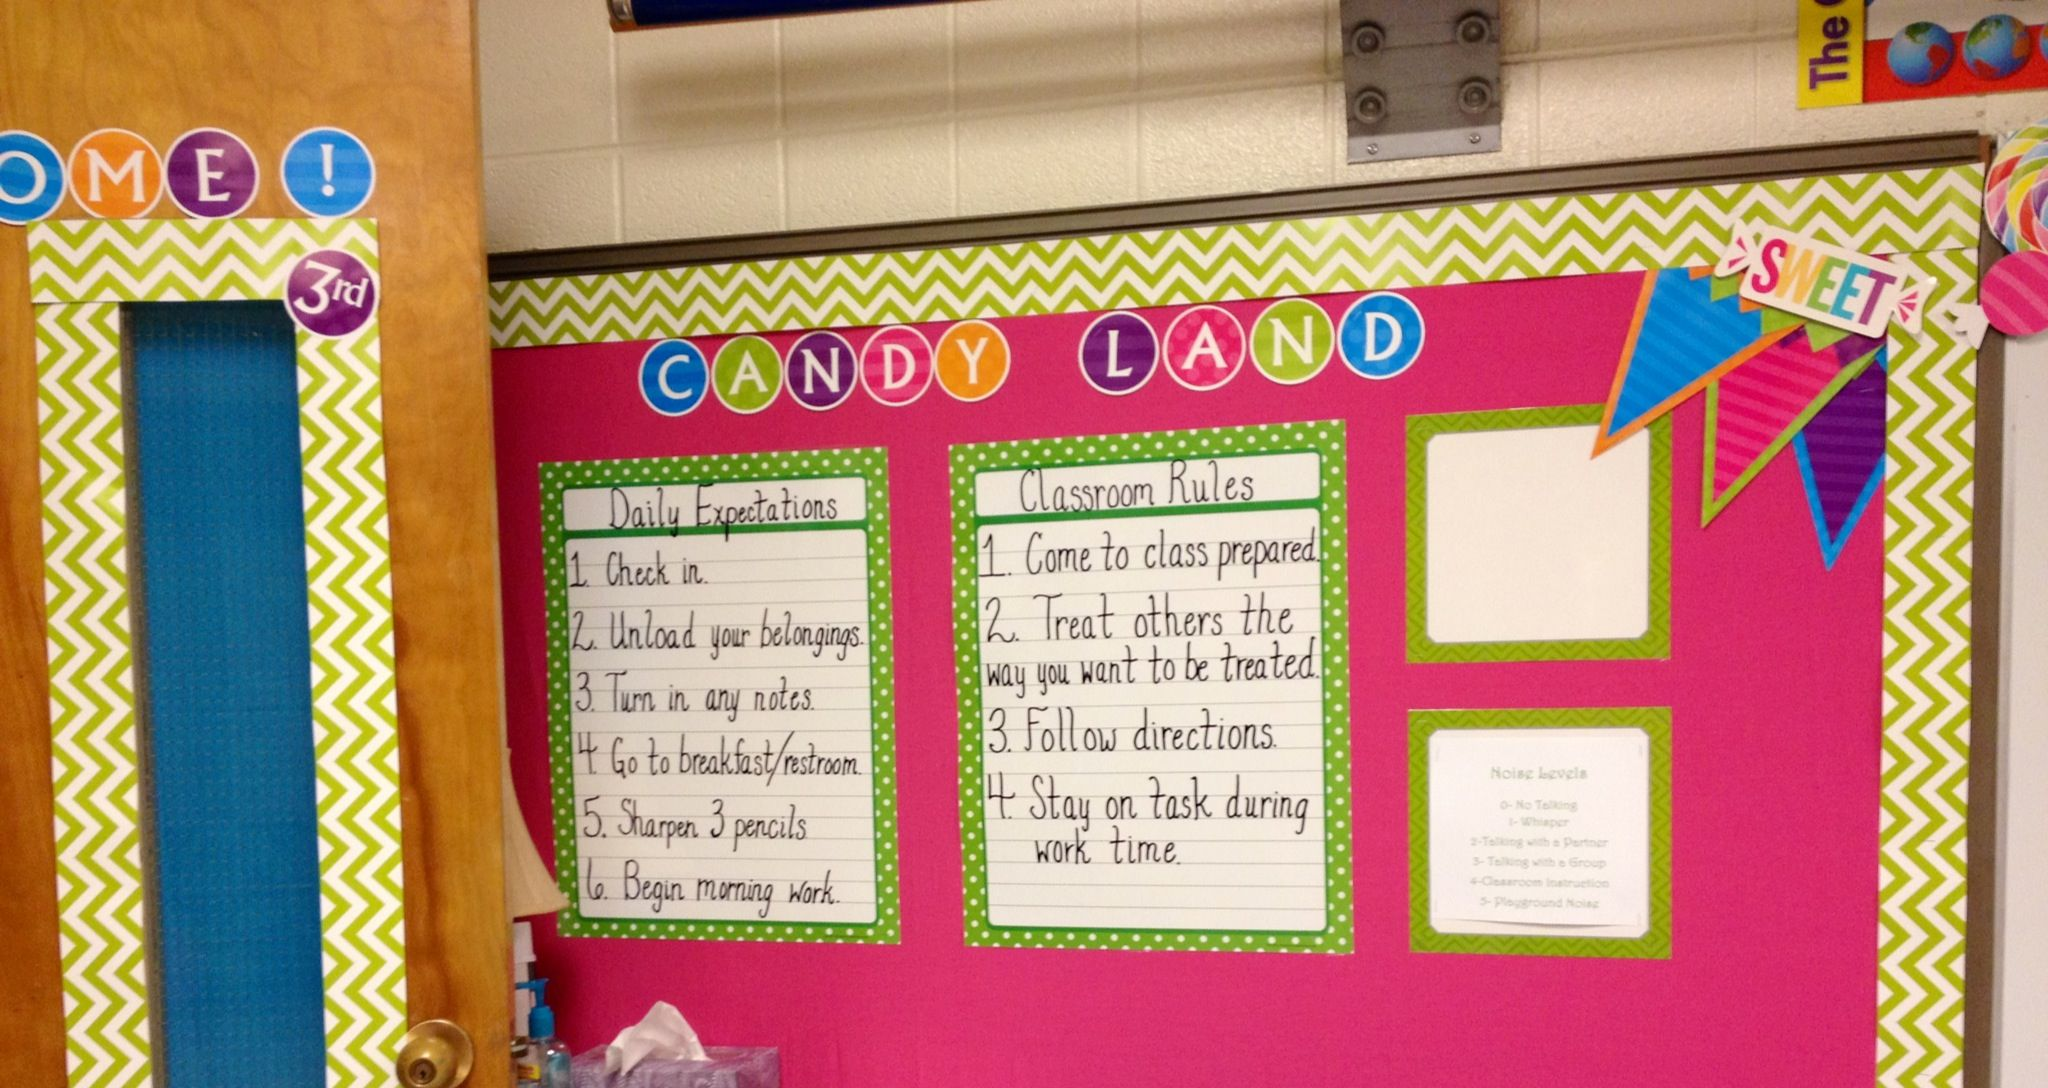 Classroom Rules And Expectations 3rd Grade Candy Land